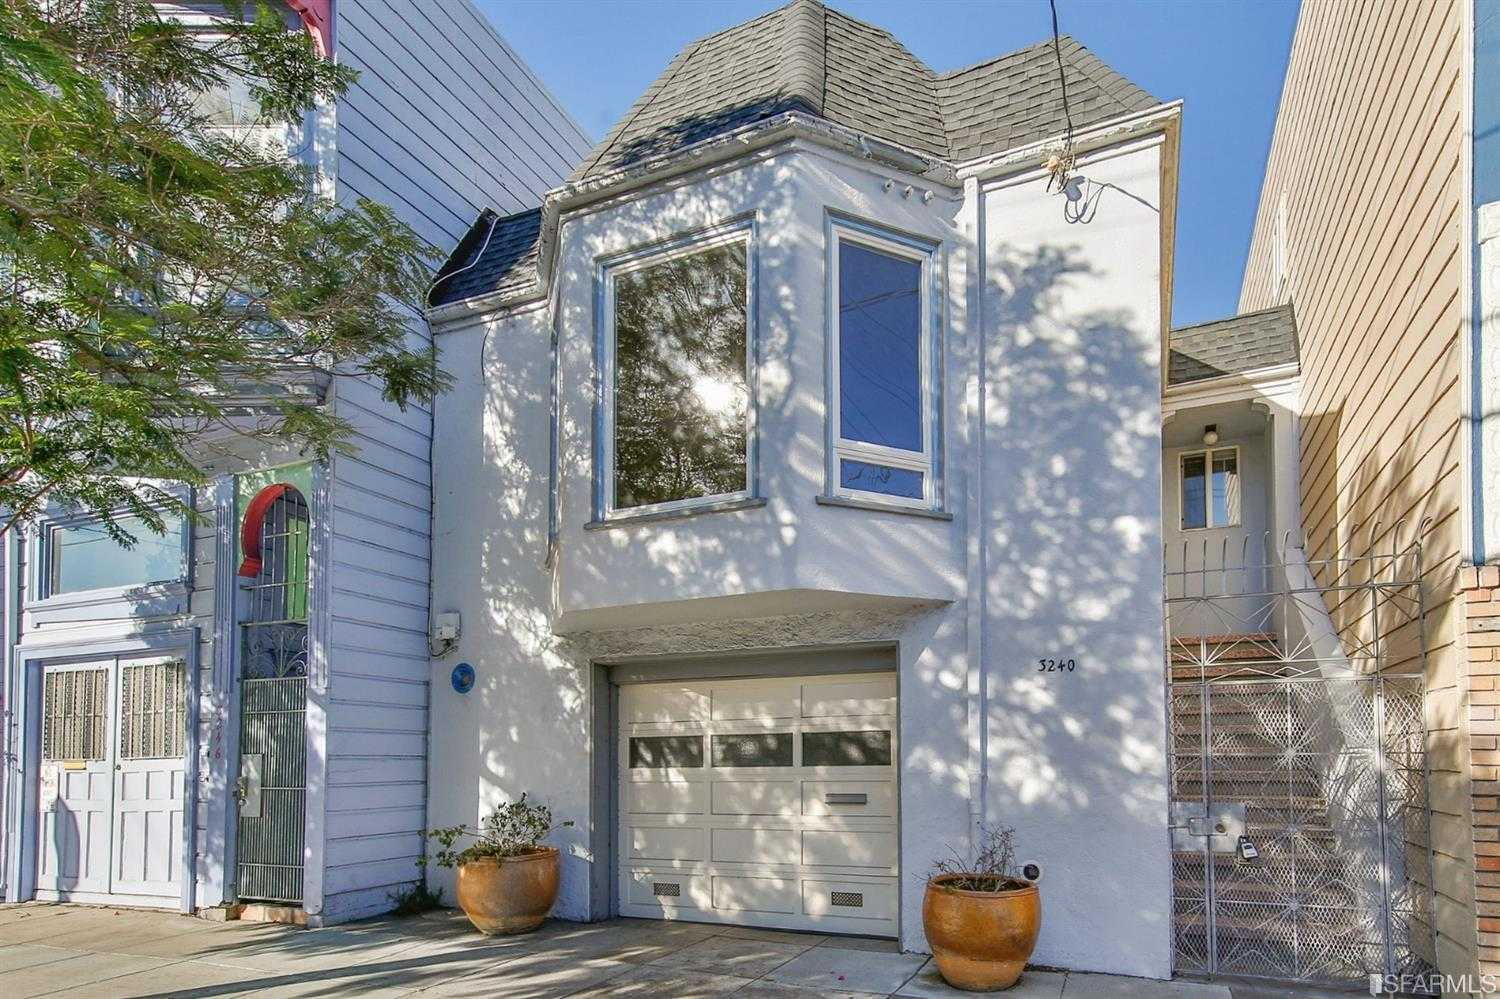 3240 25th St San Francisco, CA 94110